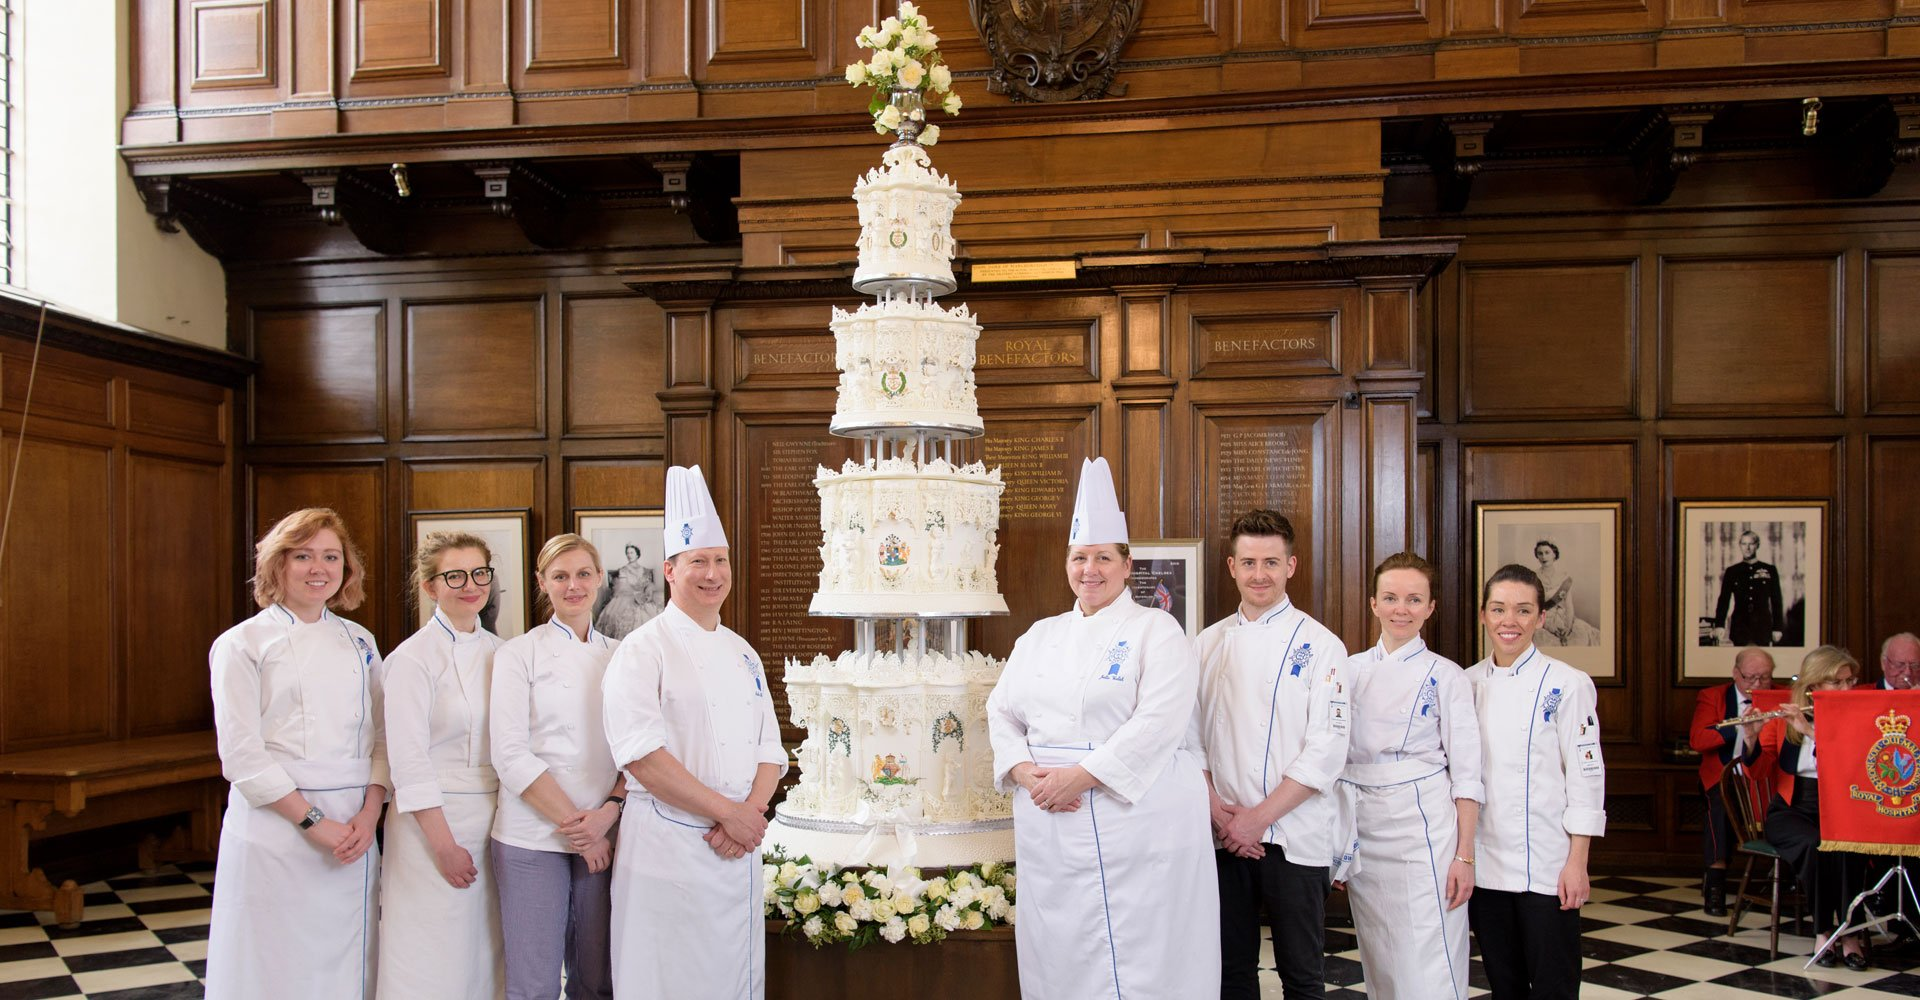 1947 royal wedding cake recreation with le cordon bleu team